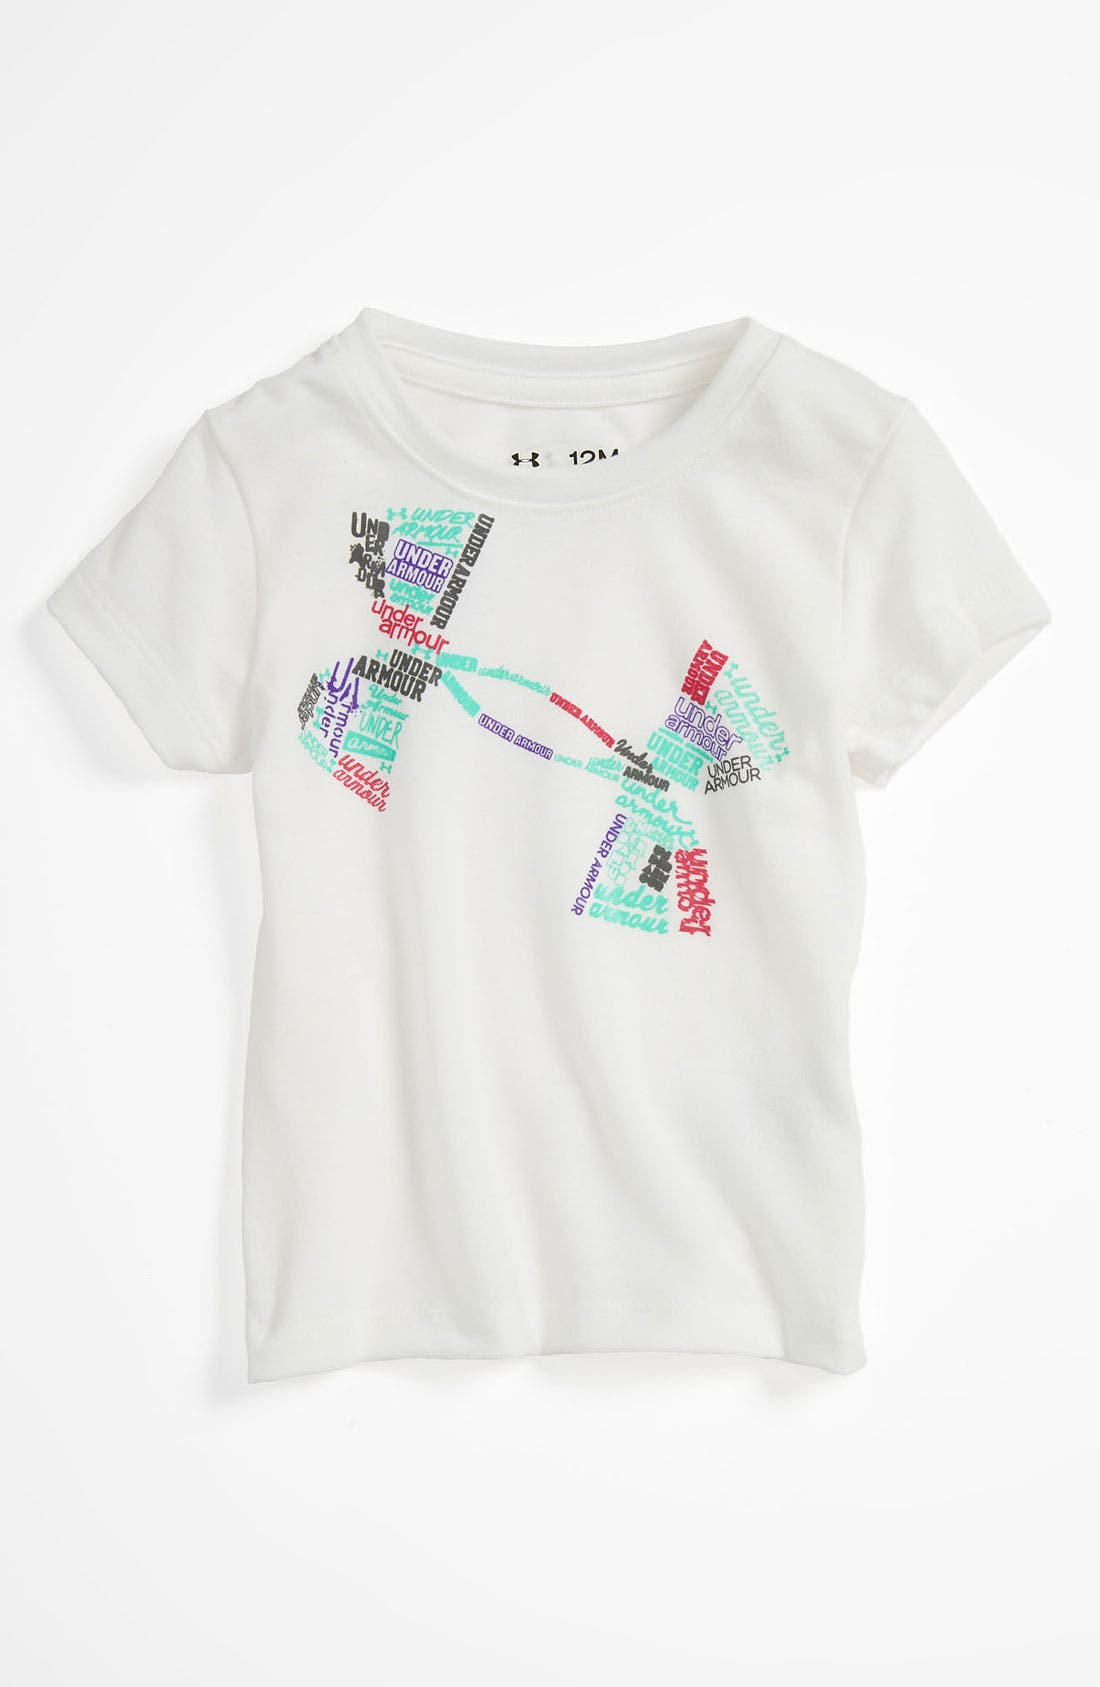 Main Image - Under Armour Tee (Baby)